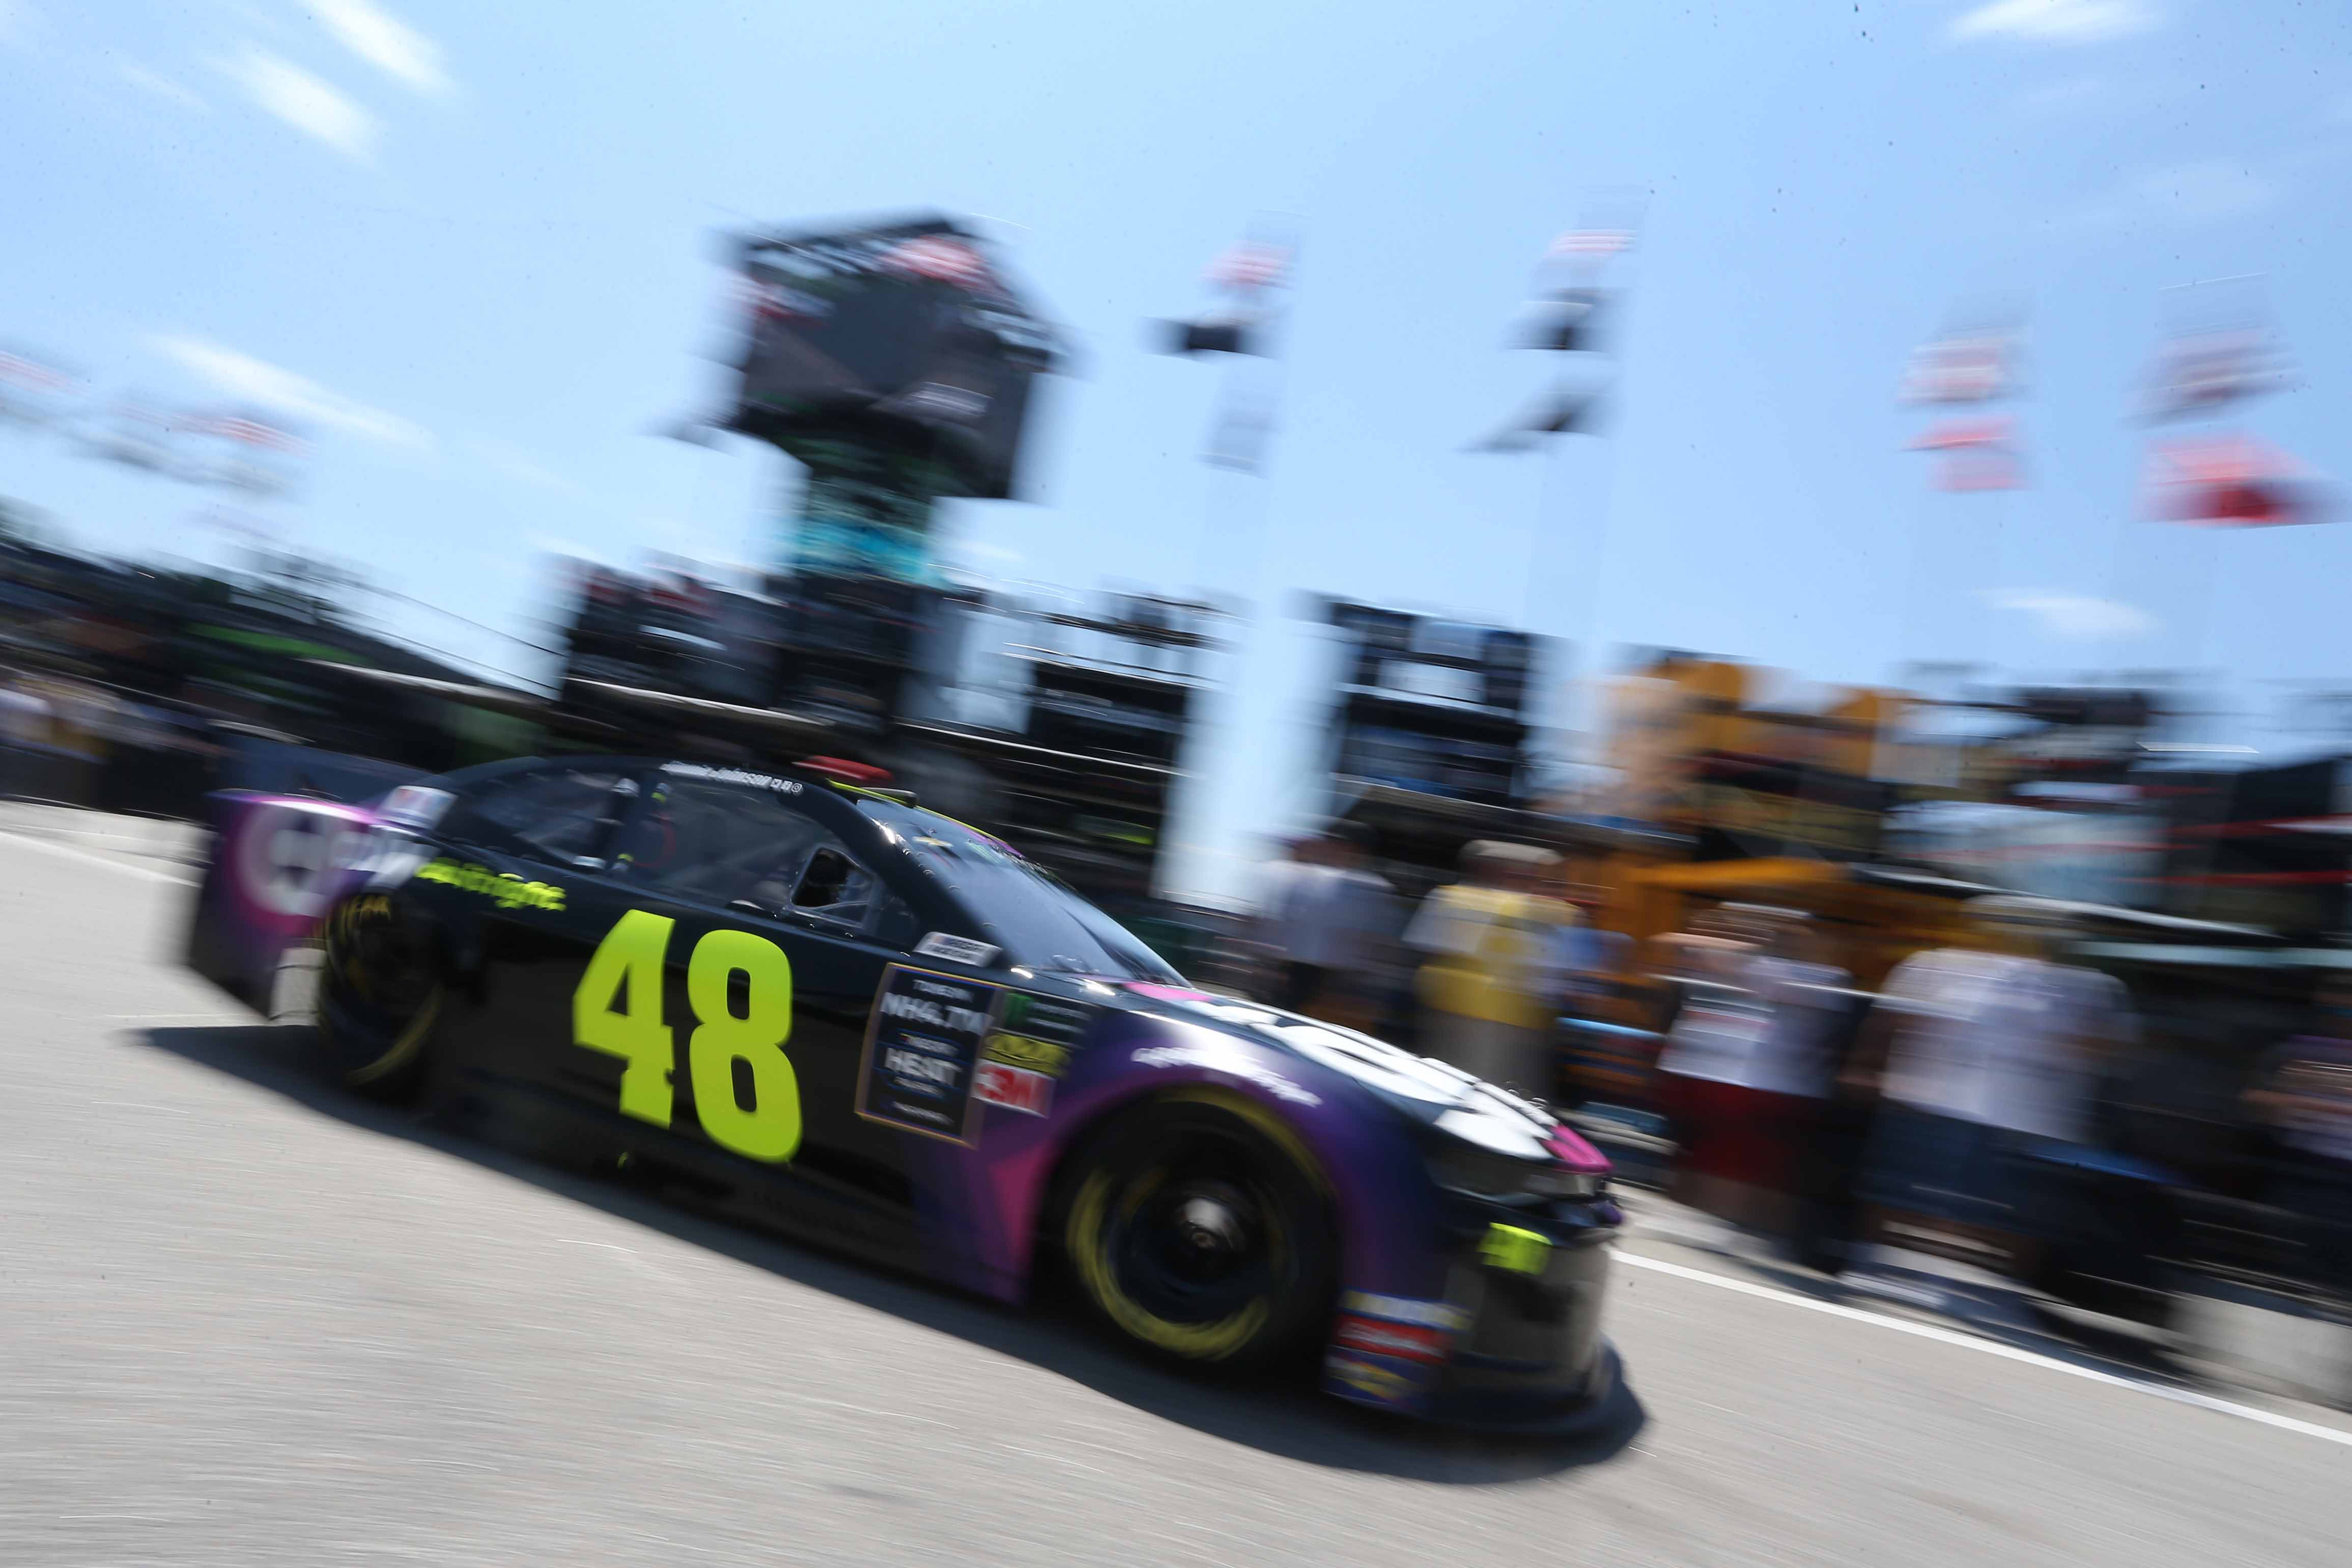 New Hampshire Final Practice Results: July 20, 2019 - Racing News